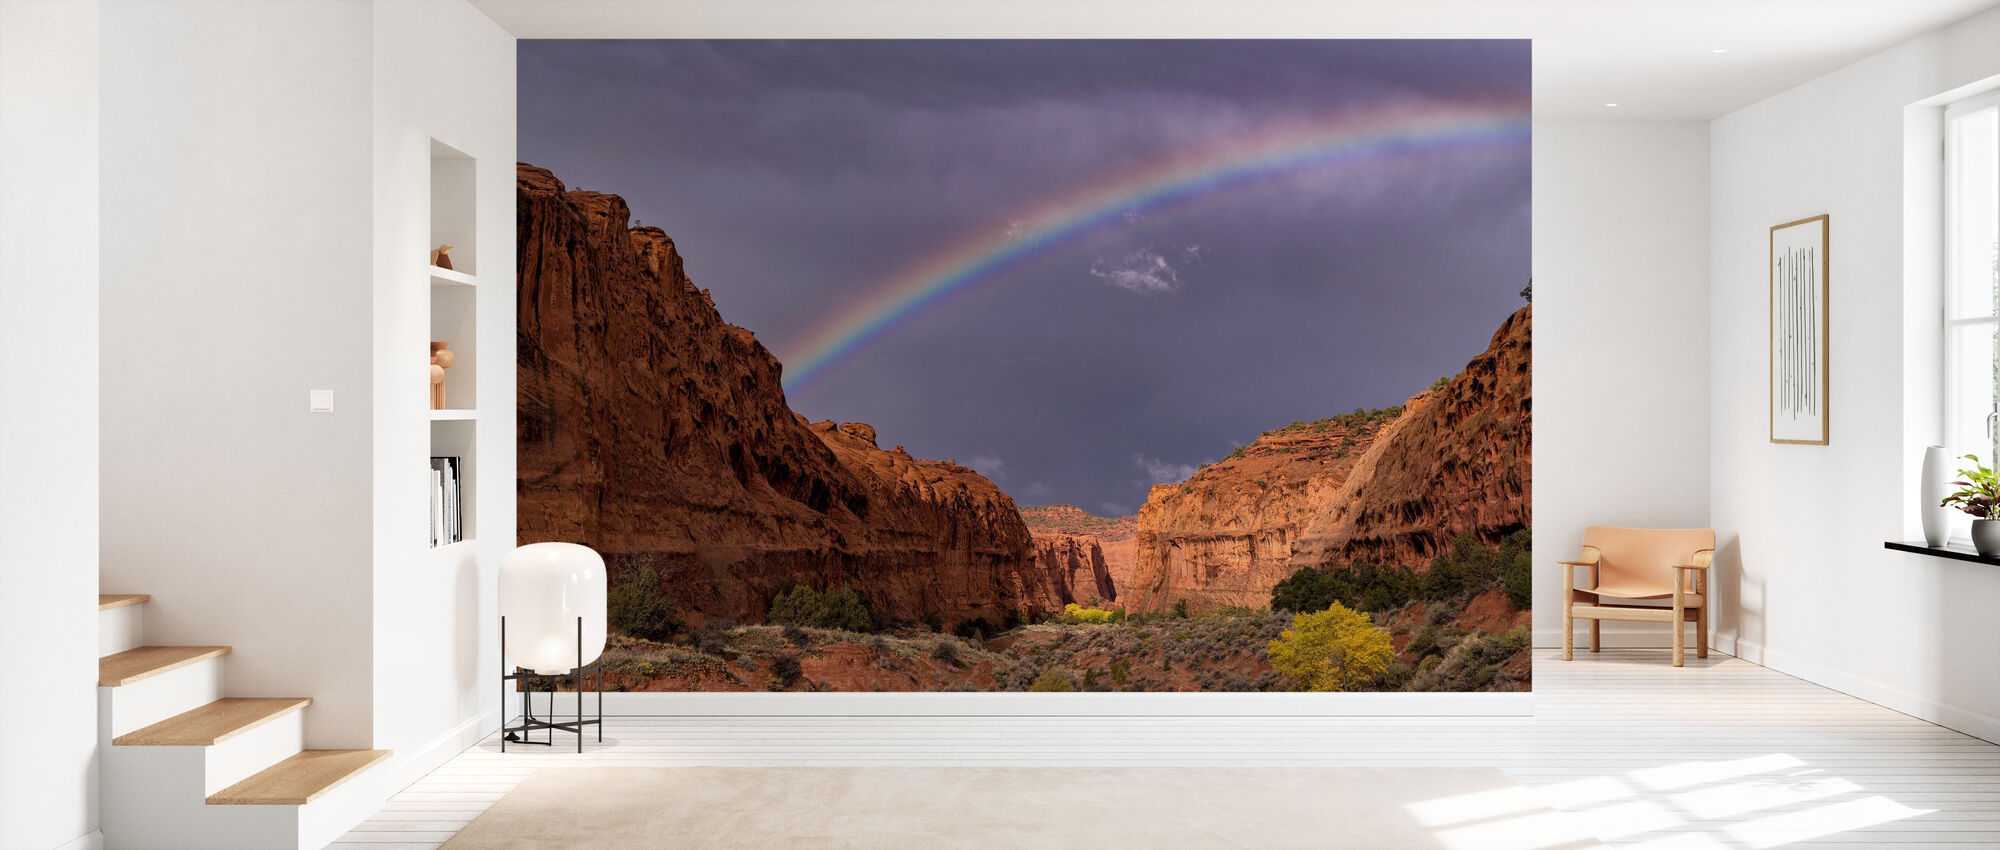 Rainbow Over Long Canyon - Wallpaper - Hallway